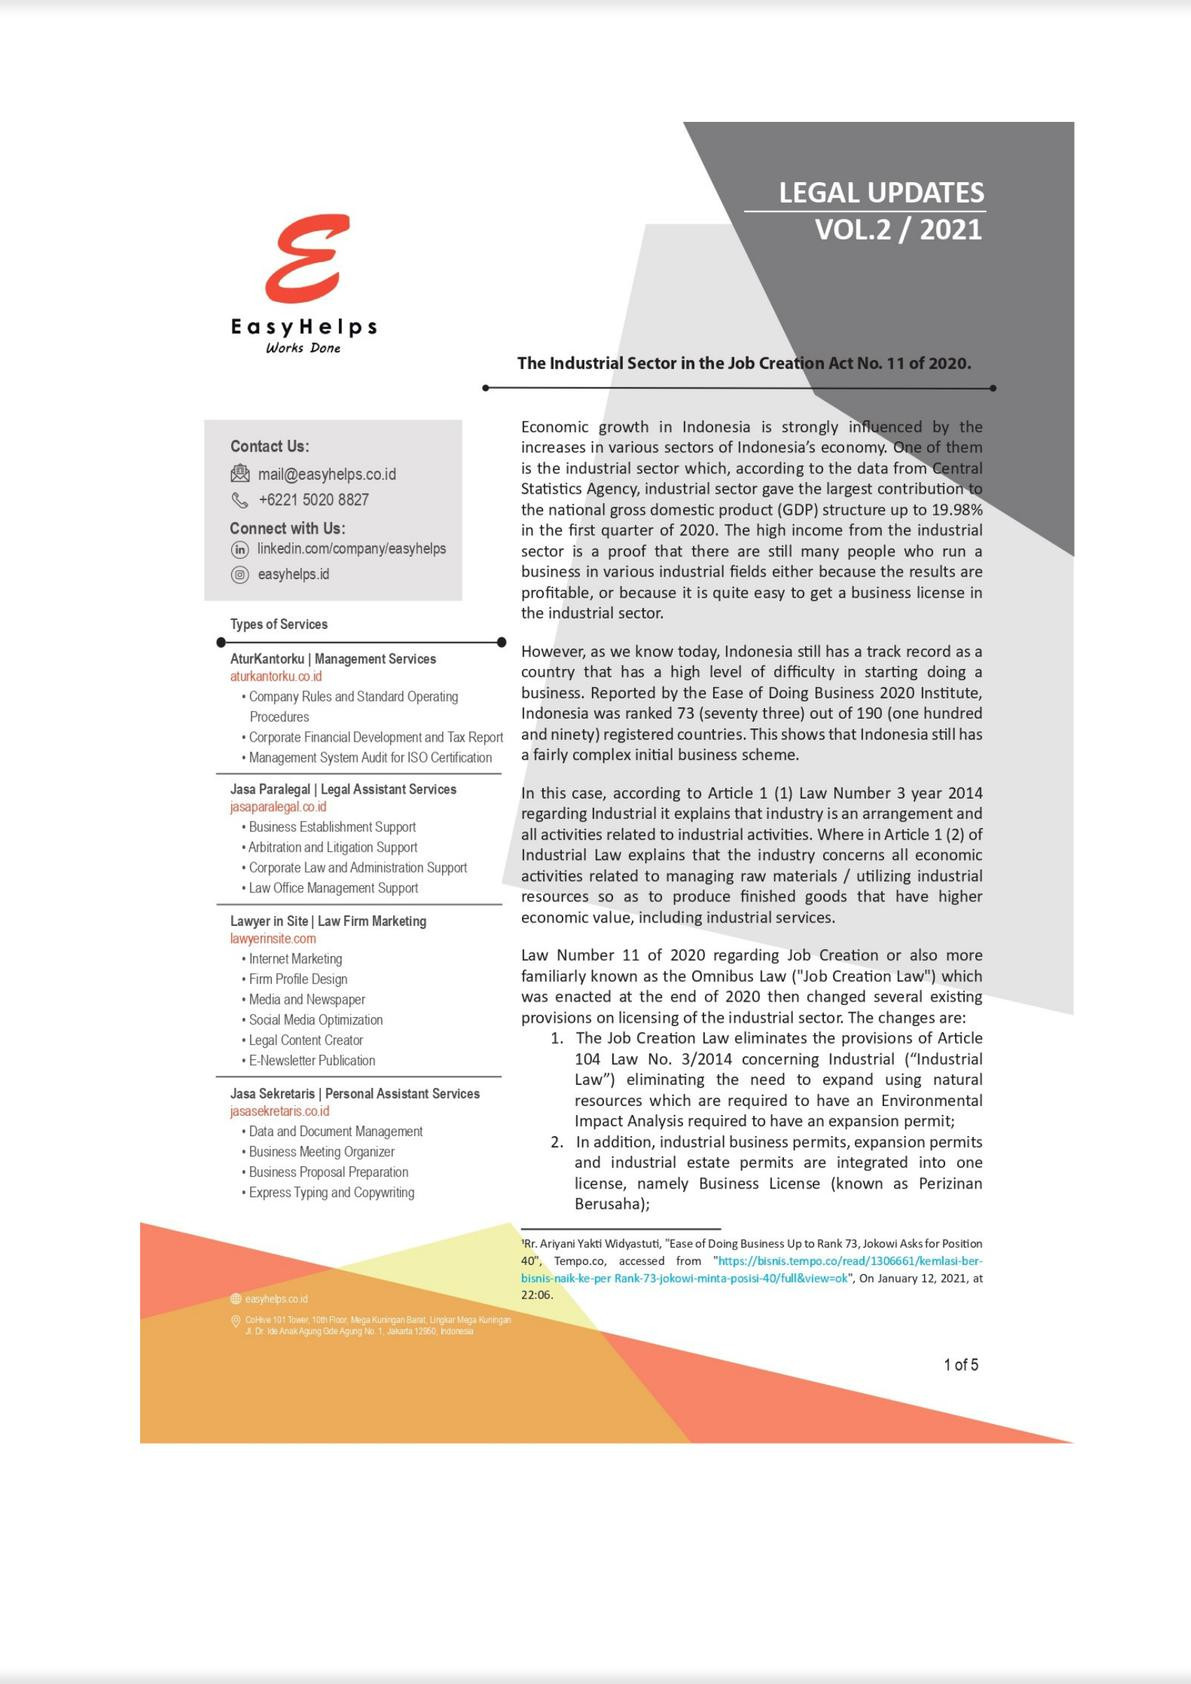 The Industrial Sector in the Job Creation Act No. 11 of 2020 New Regulation in Indonesia-0